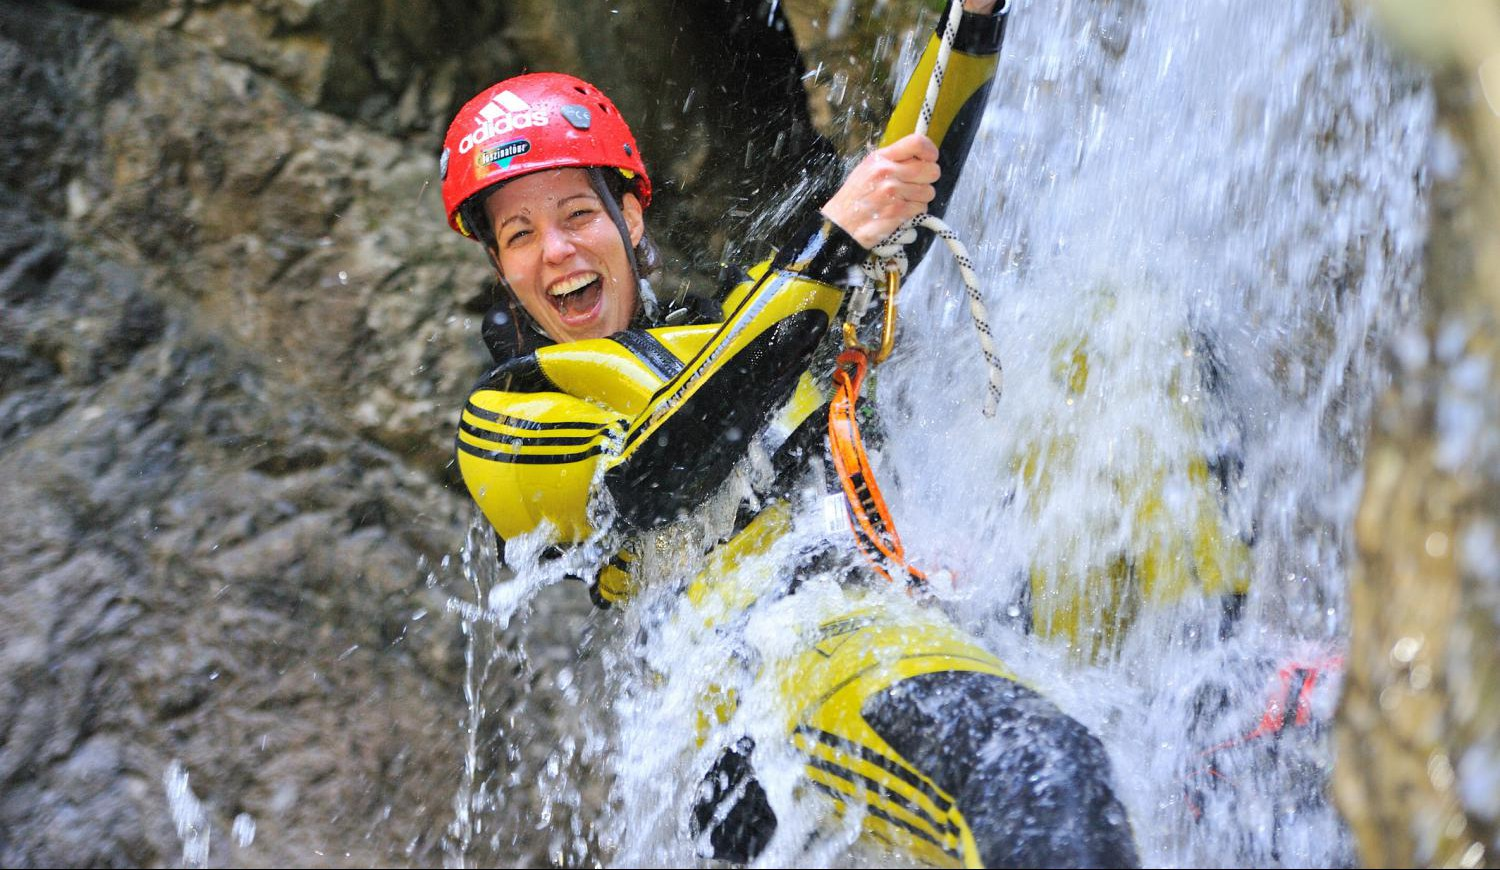 Actioncamps Canyoning Outdoor-Erlebnisse und Survivaltraining in Haiming ✔